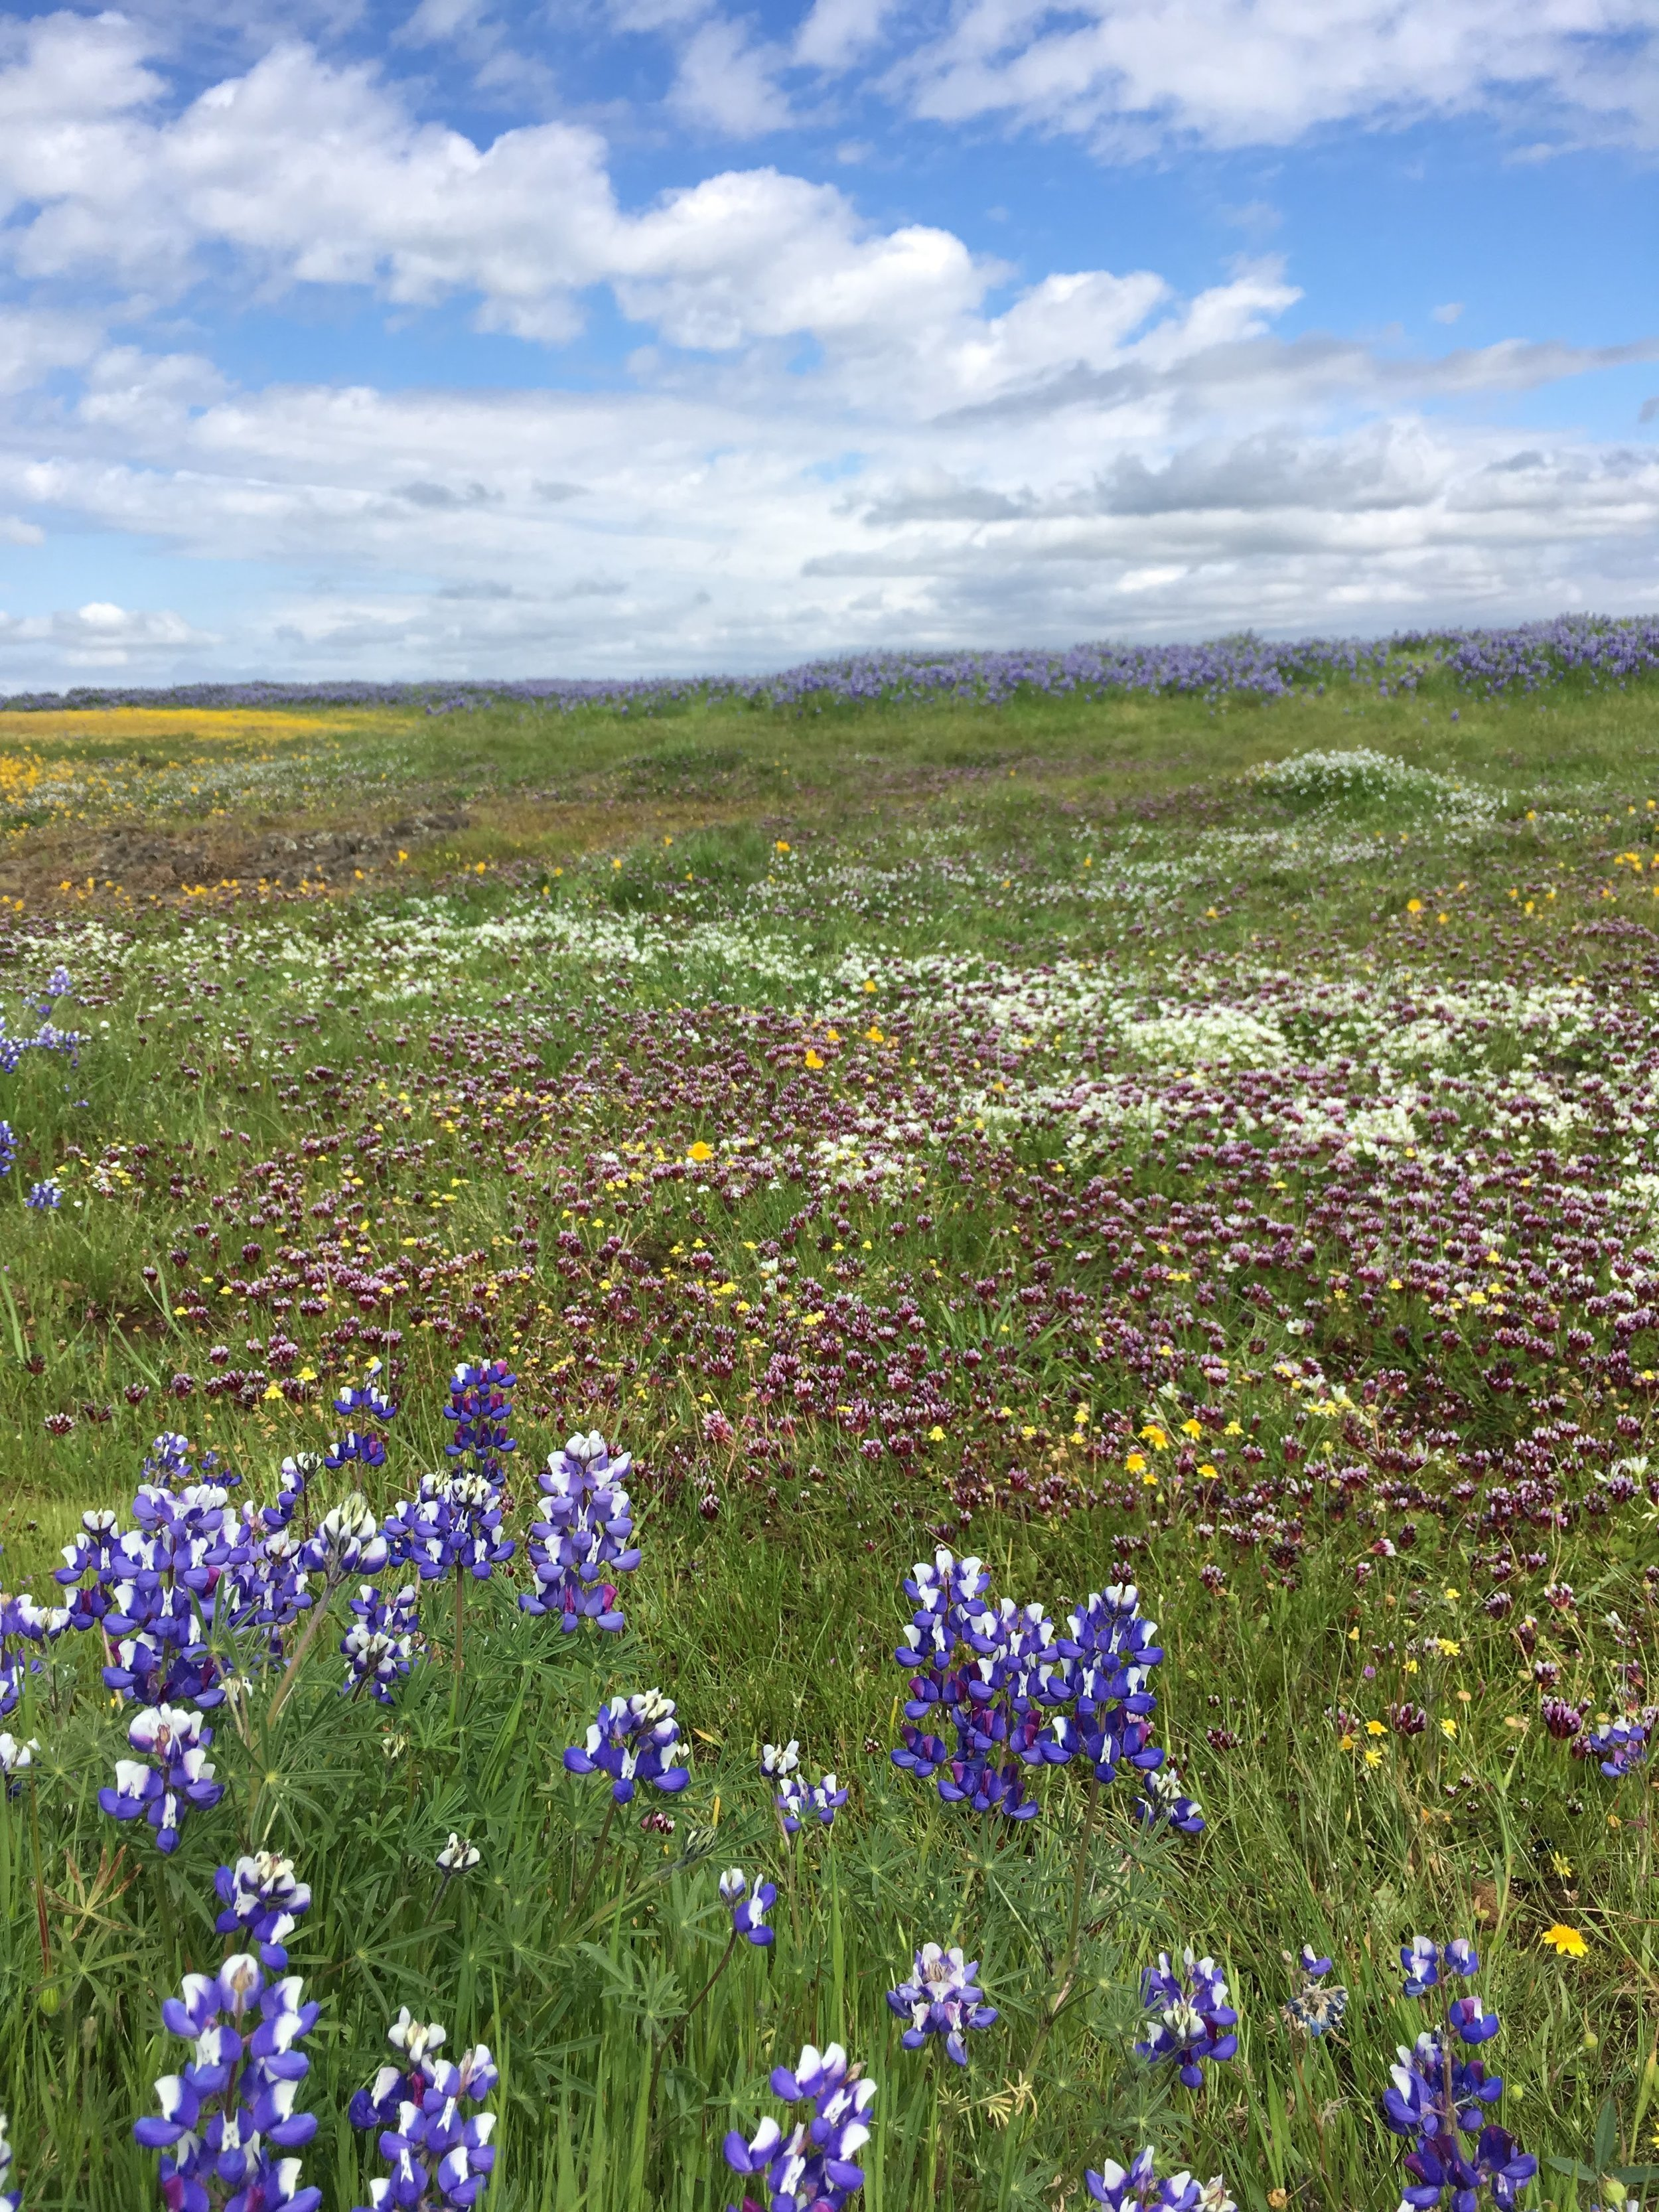 North Table Mountain, CA, April 2019. The super bloom draws thousands of visitors and boasts some of the highest plant diversity in California grasslands. Restoration ecology is about conserving these landscapes and creating more of them.